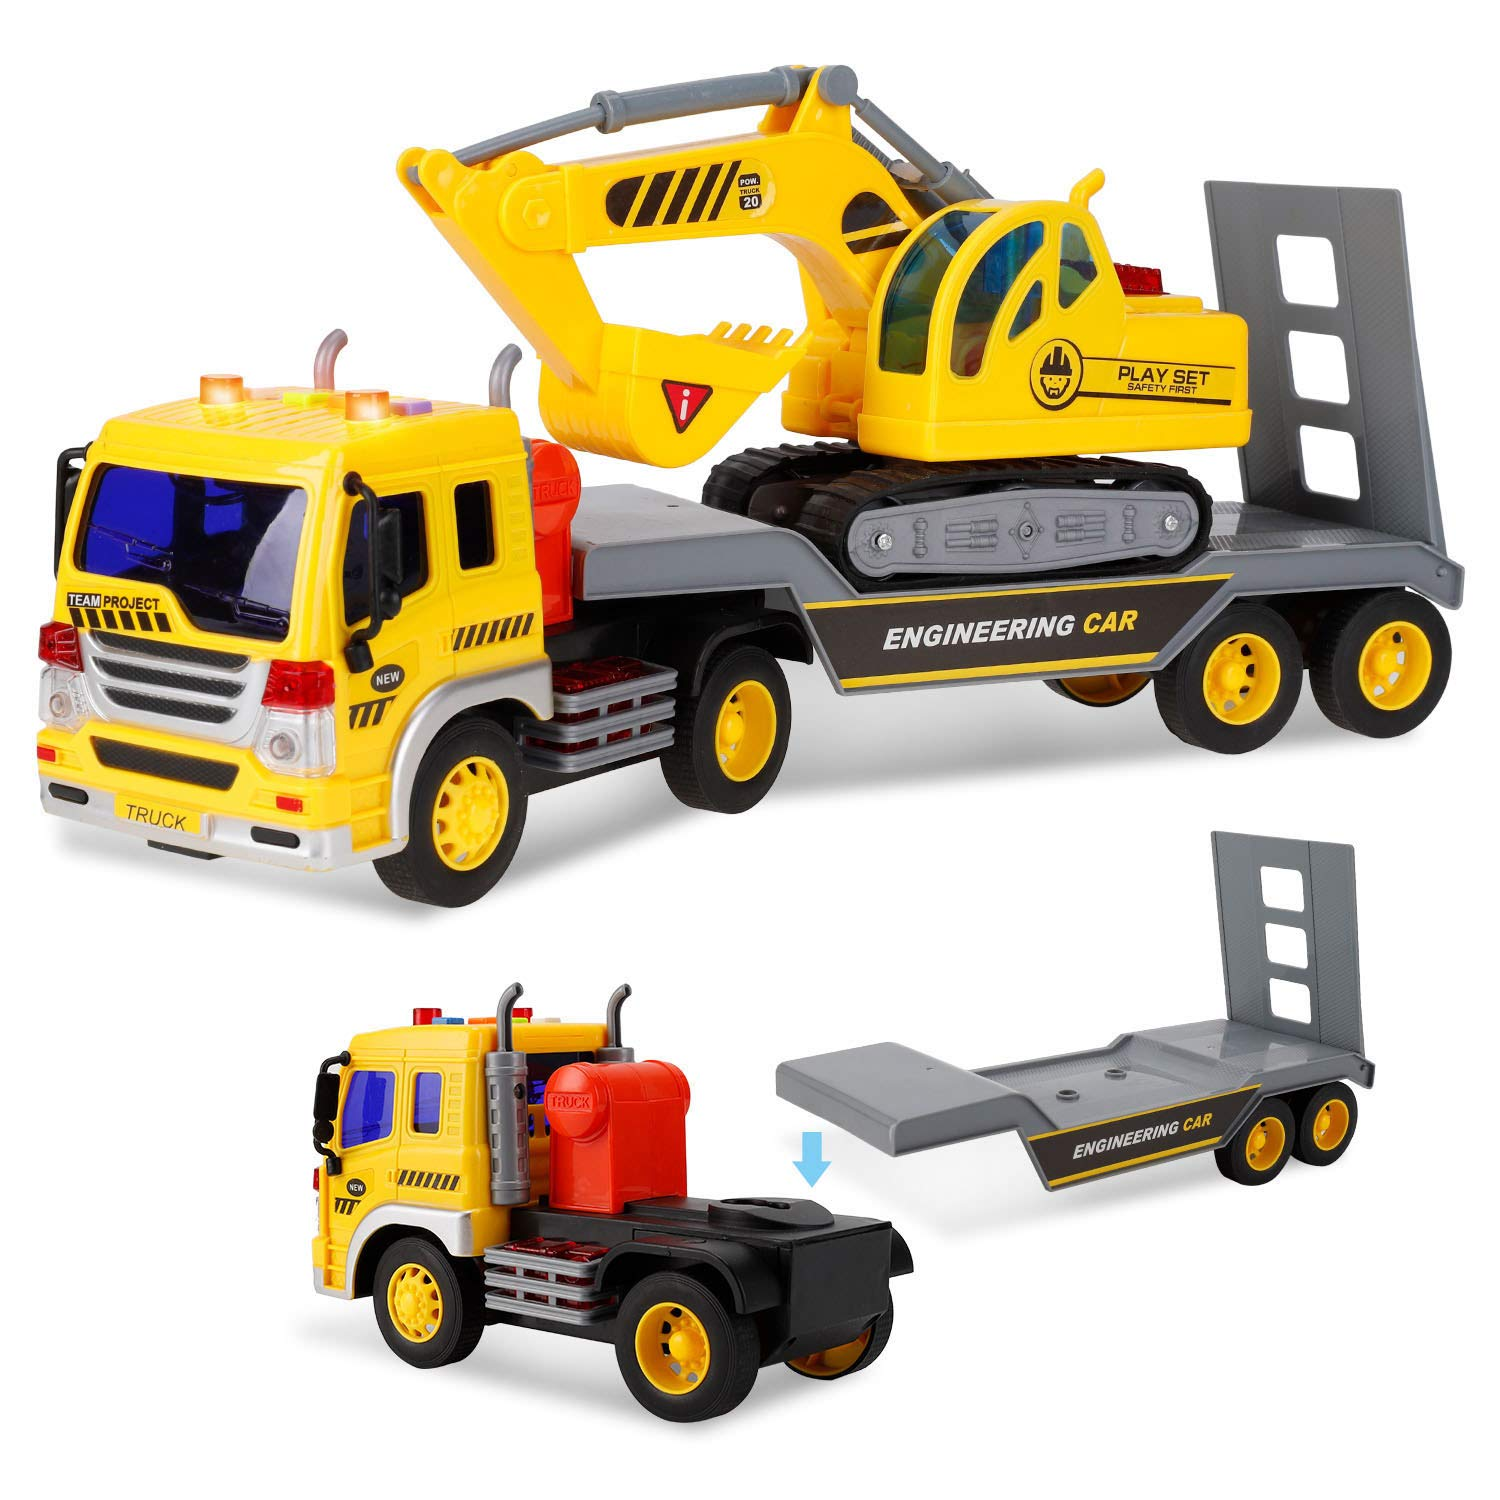 Liberty Imports 2-in-1 Friction Powered Toy Construction Truck Vehicle with Excavator with Lights and Sounds